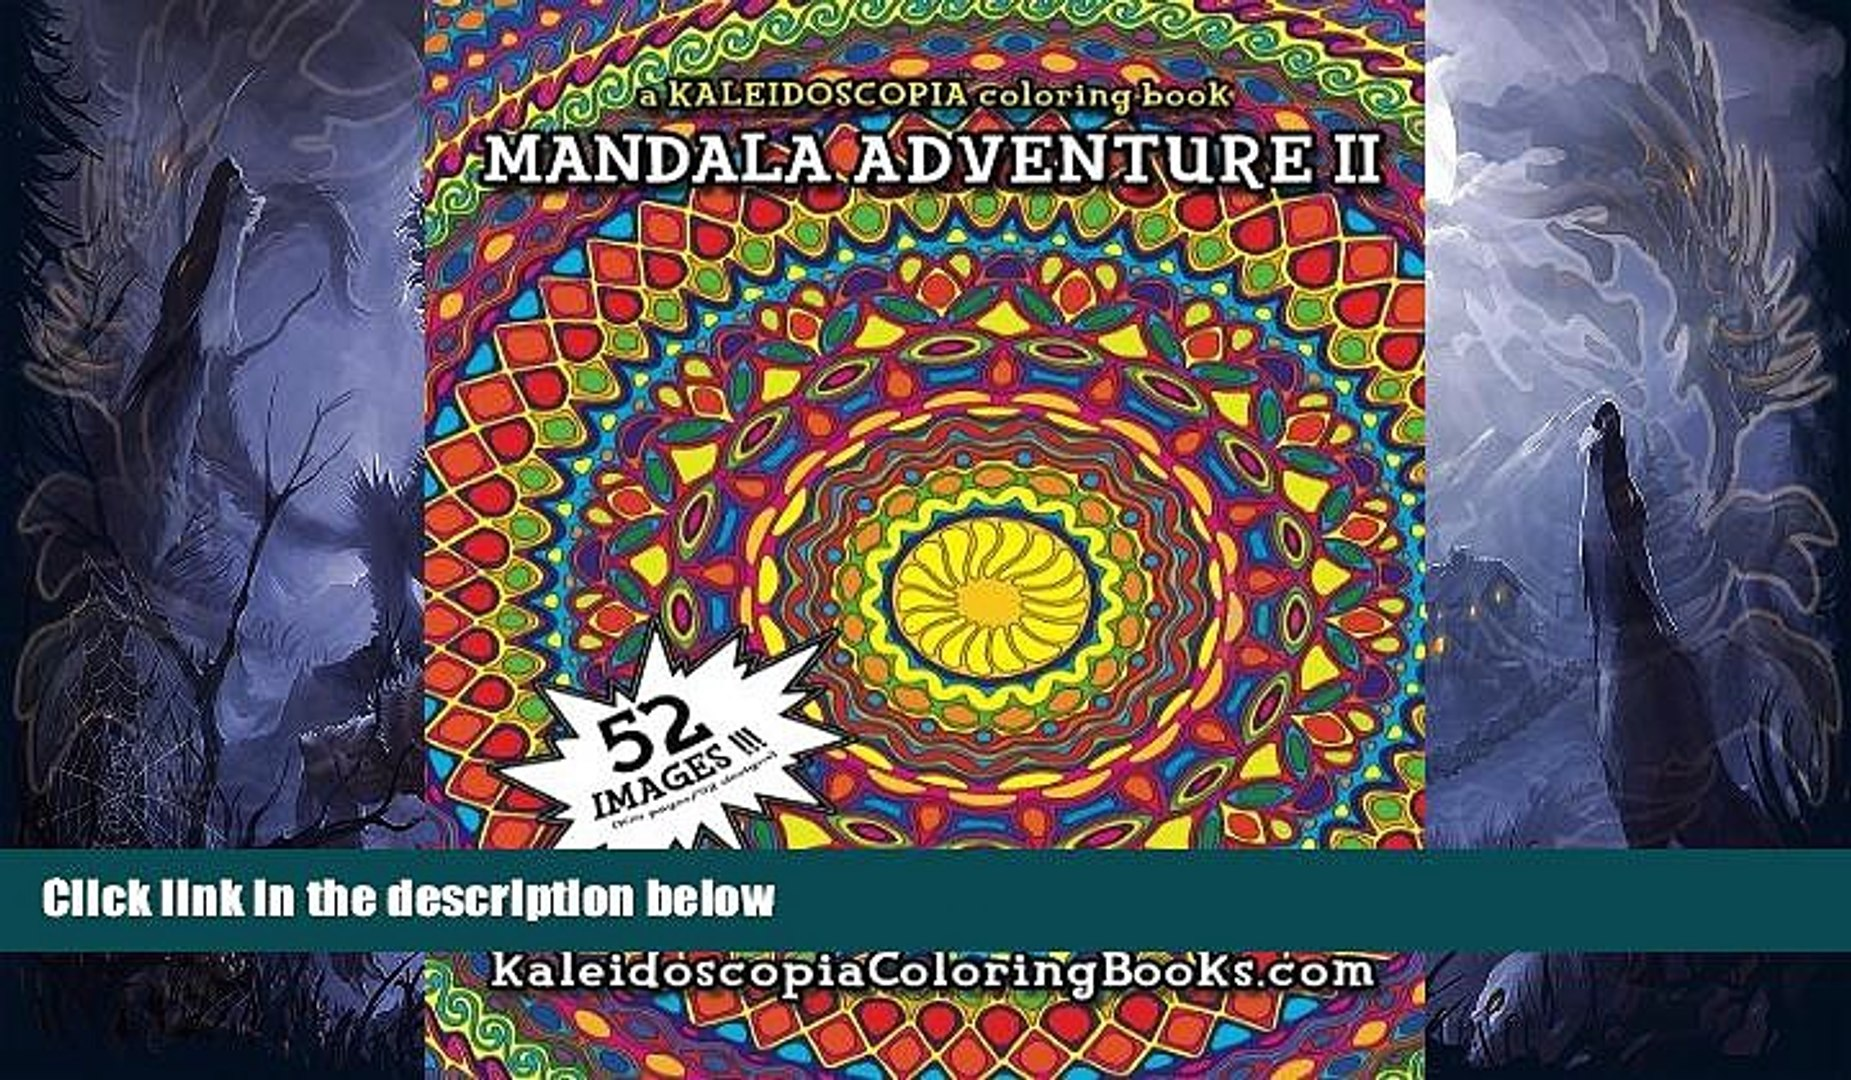 Pre Order Mandala Adventure II: A Kaleidoscopia Coloring Book Kendall Bohn  mp3